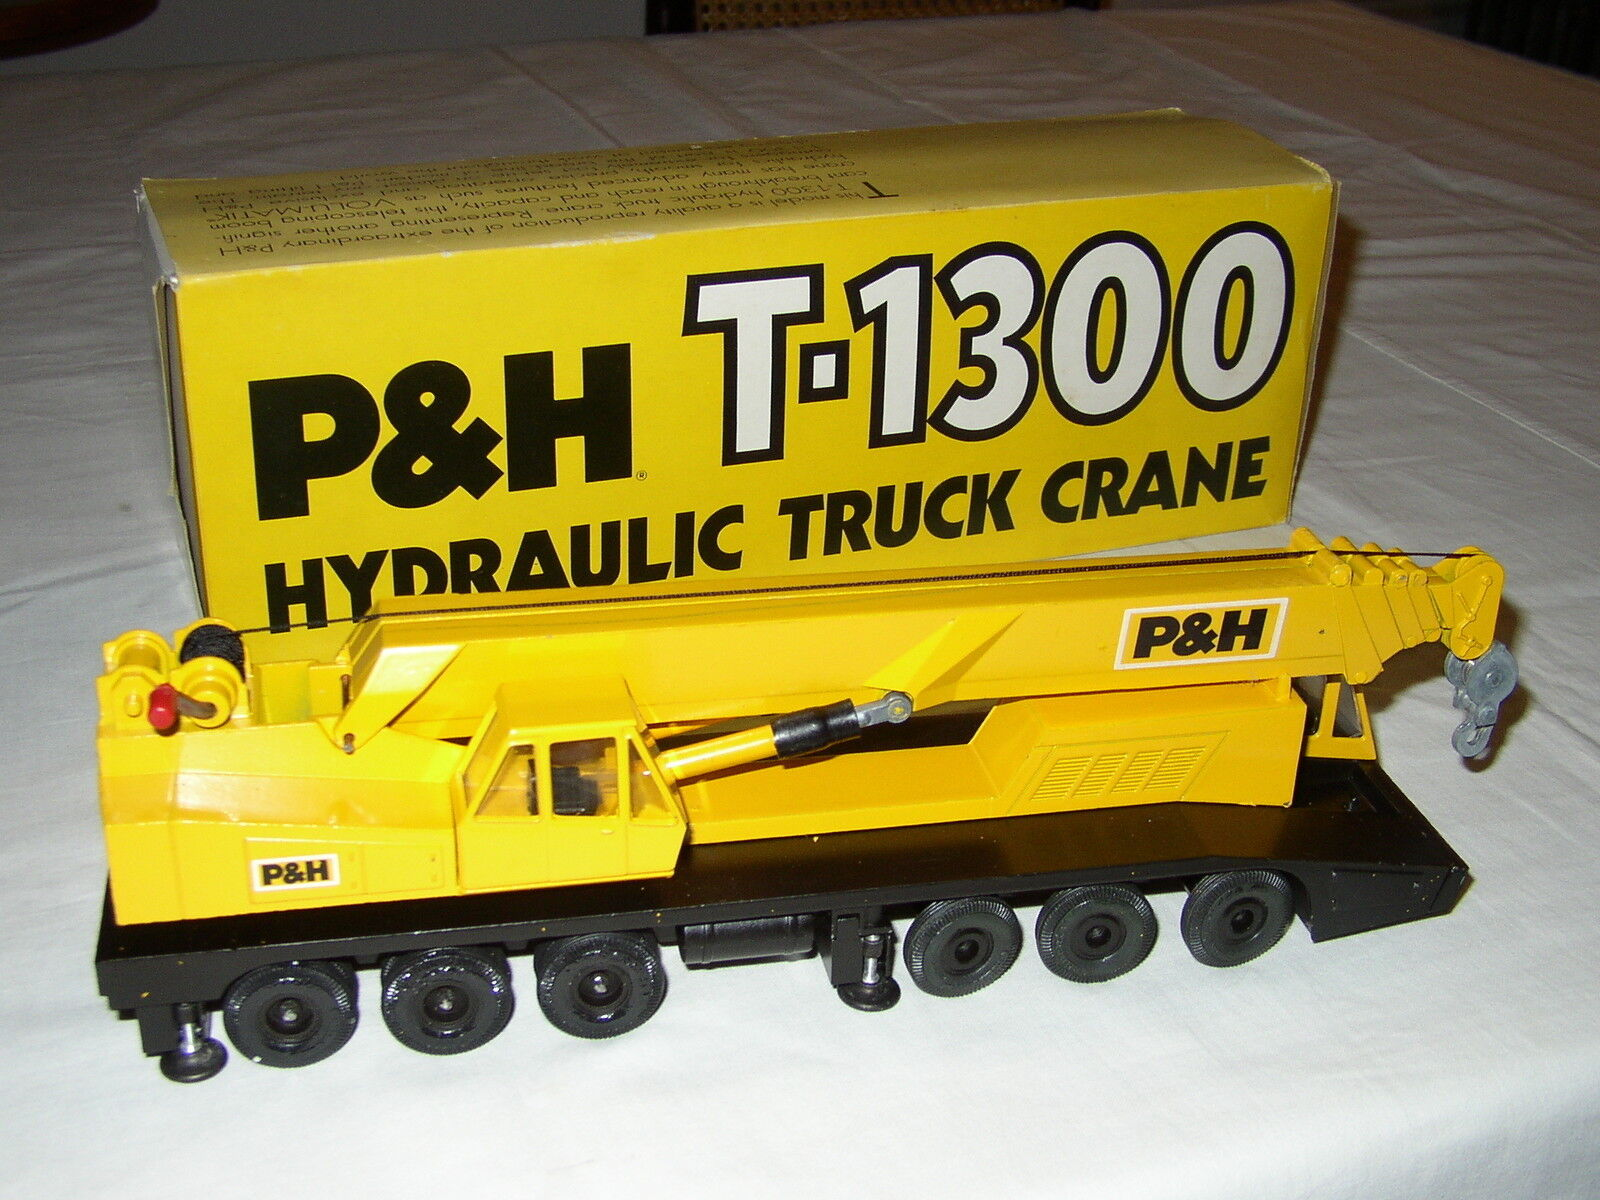 P&H T-1300 HYDRAULIC TRUCK CRANE NEAR MINT CON BOX - GESCHA CONRAD - 150